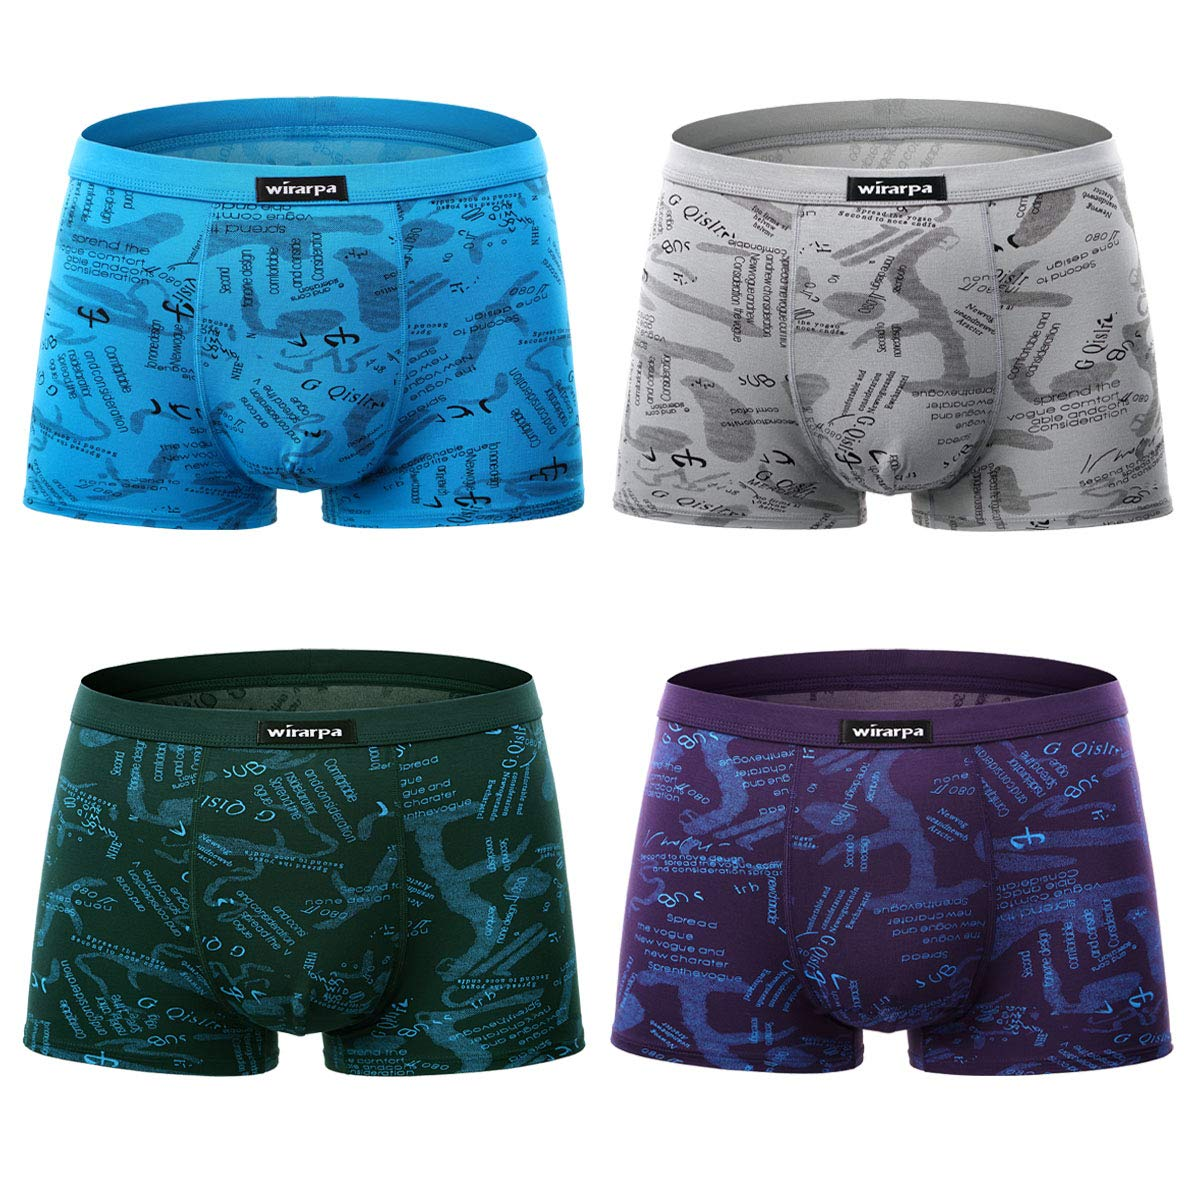 wirarpa Men's 4 Pack Micro Modal Underwear Ultra Soft Microfiber Trunks Covered Waistband Short Leg S-3XL MEN-BOXERS-01